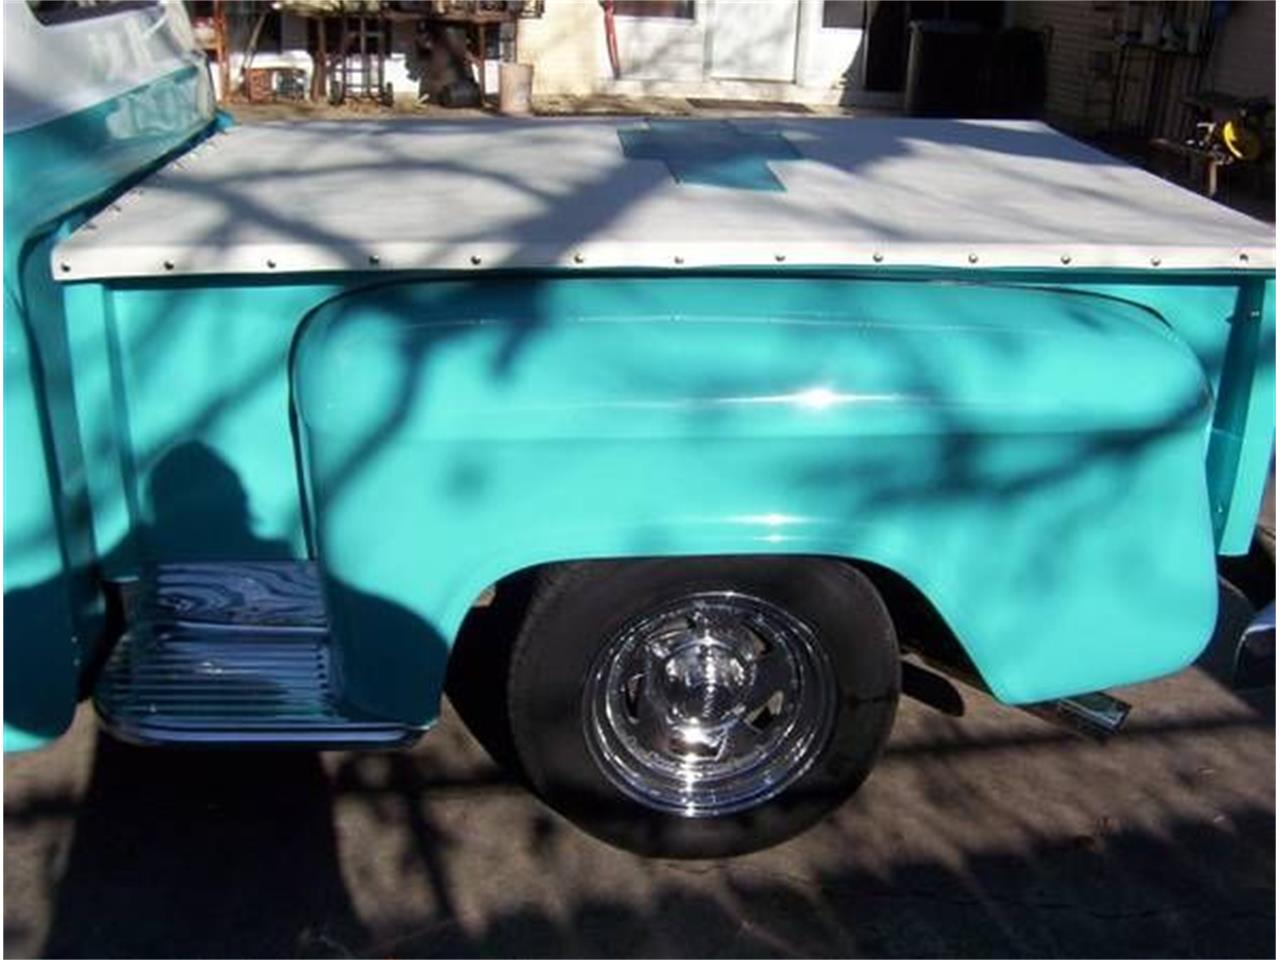 1958 Chevrolet Pickup for sale in Cadillac, MI – photo 12